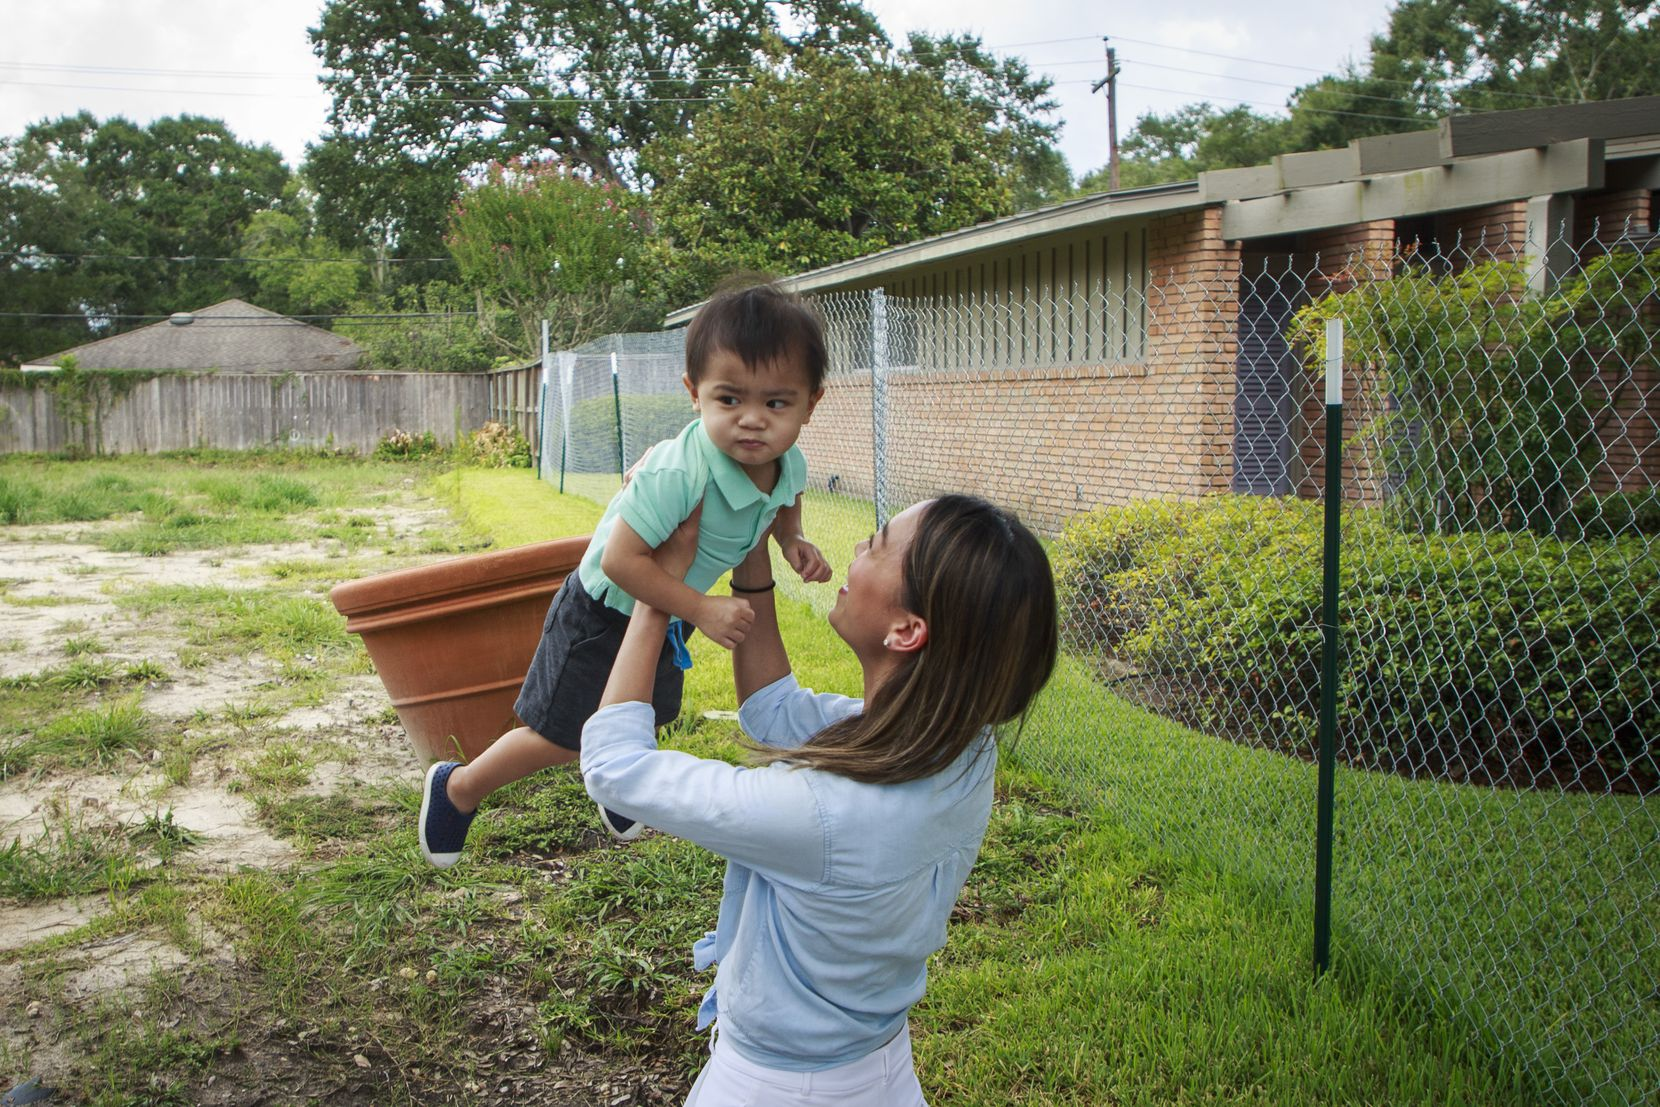 Cathy Pham plays with son Aidan at the site where their home once stood in southwest Houston. A year ago, a Dallas Morning News photo of their rescue went viral.